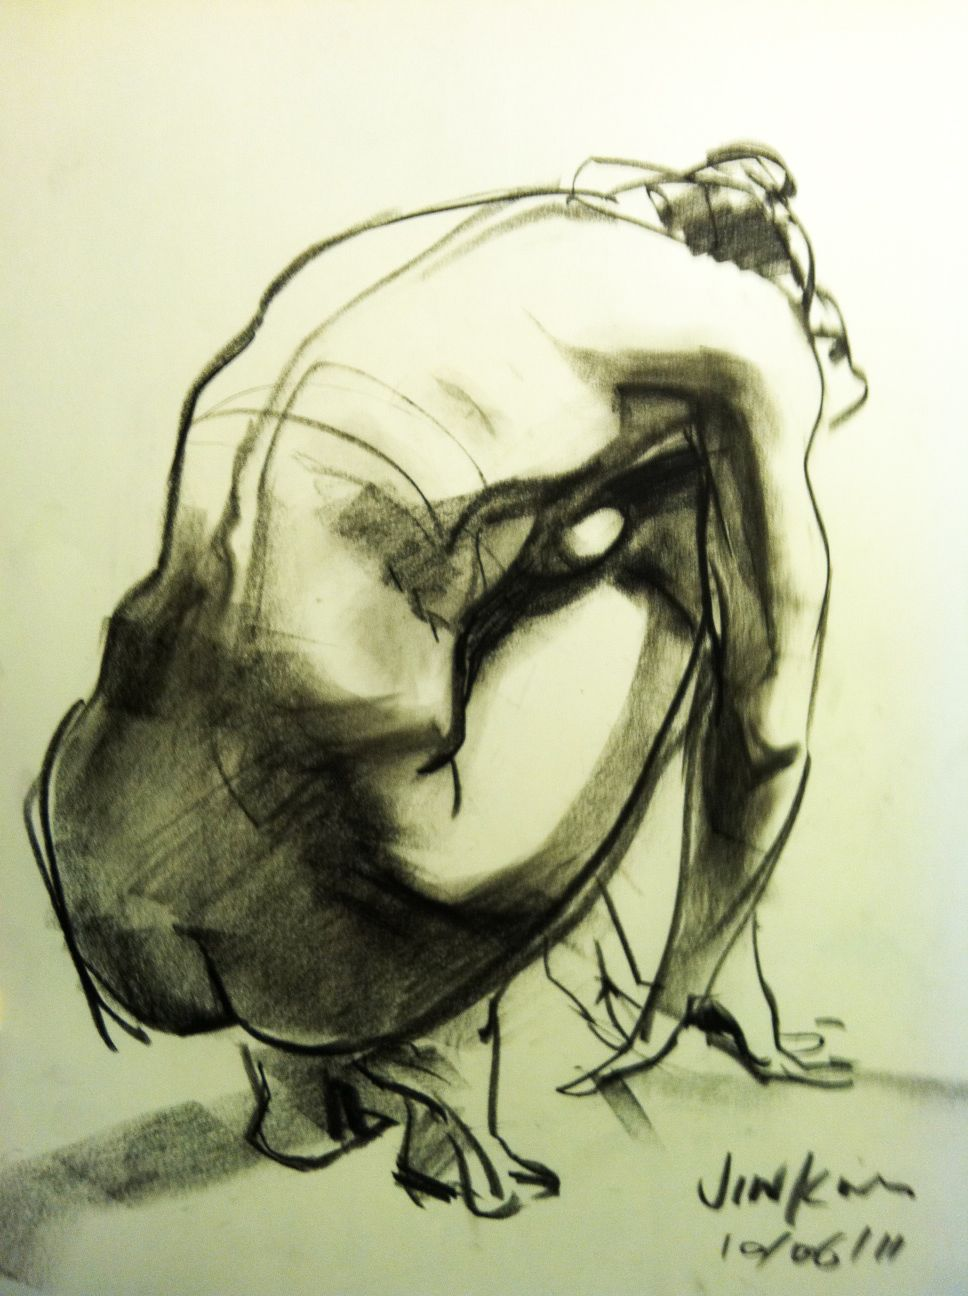 It's not fashion illustration but a life drawing but fashion should